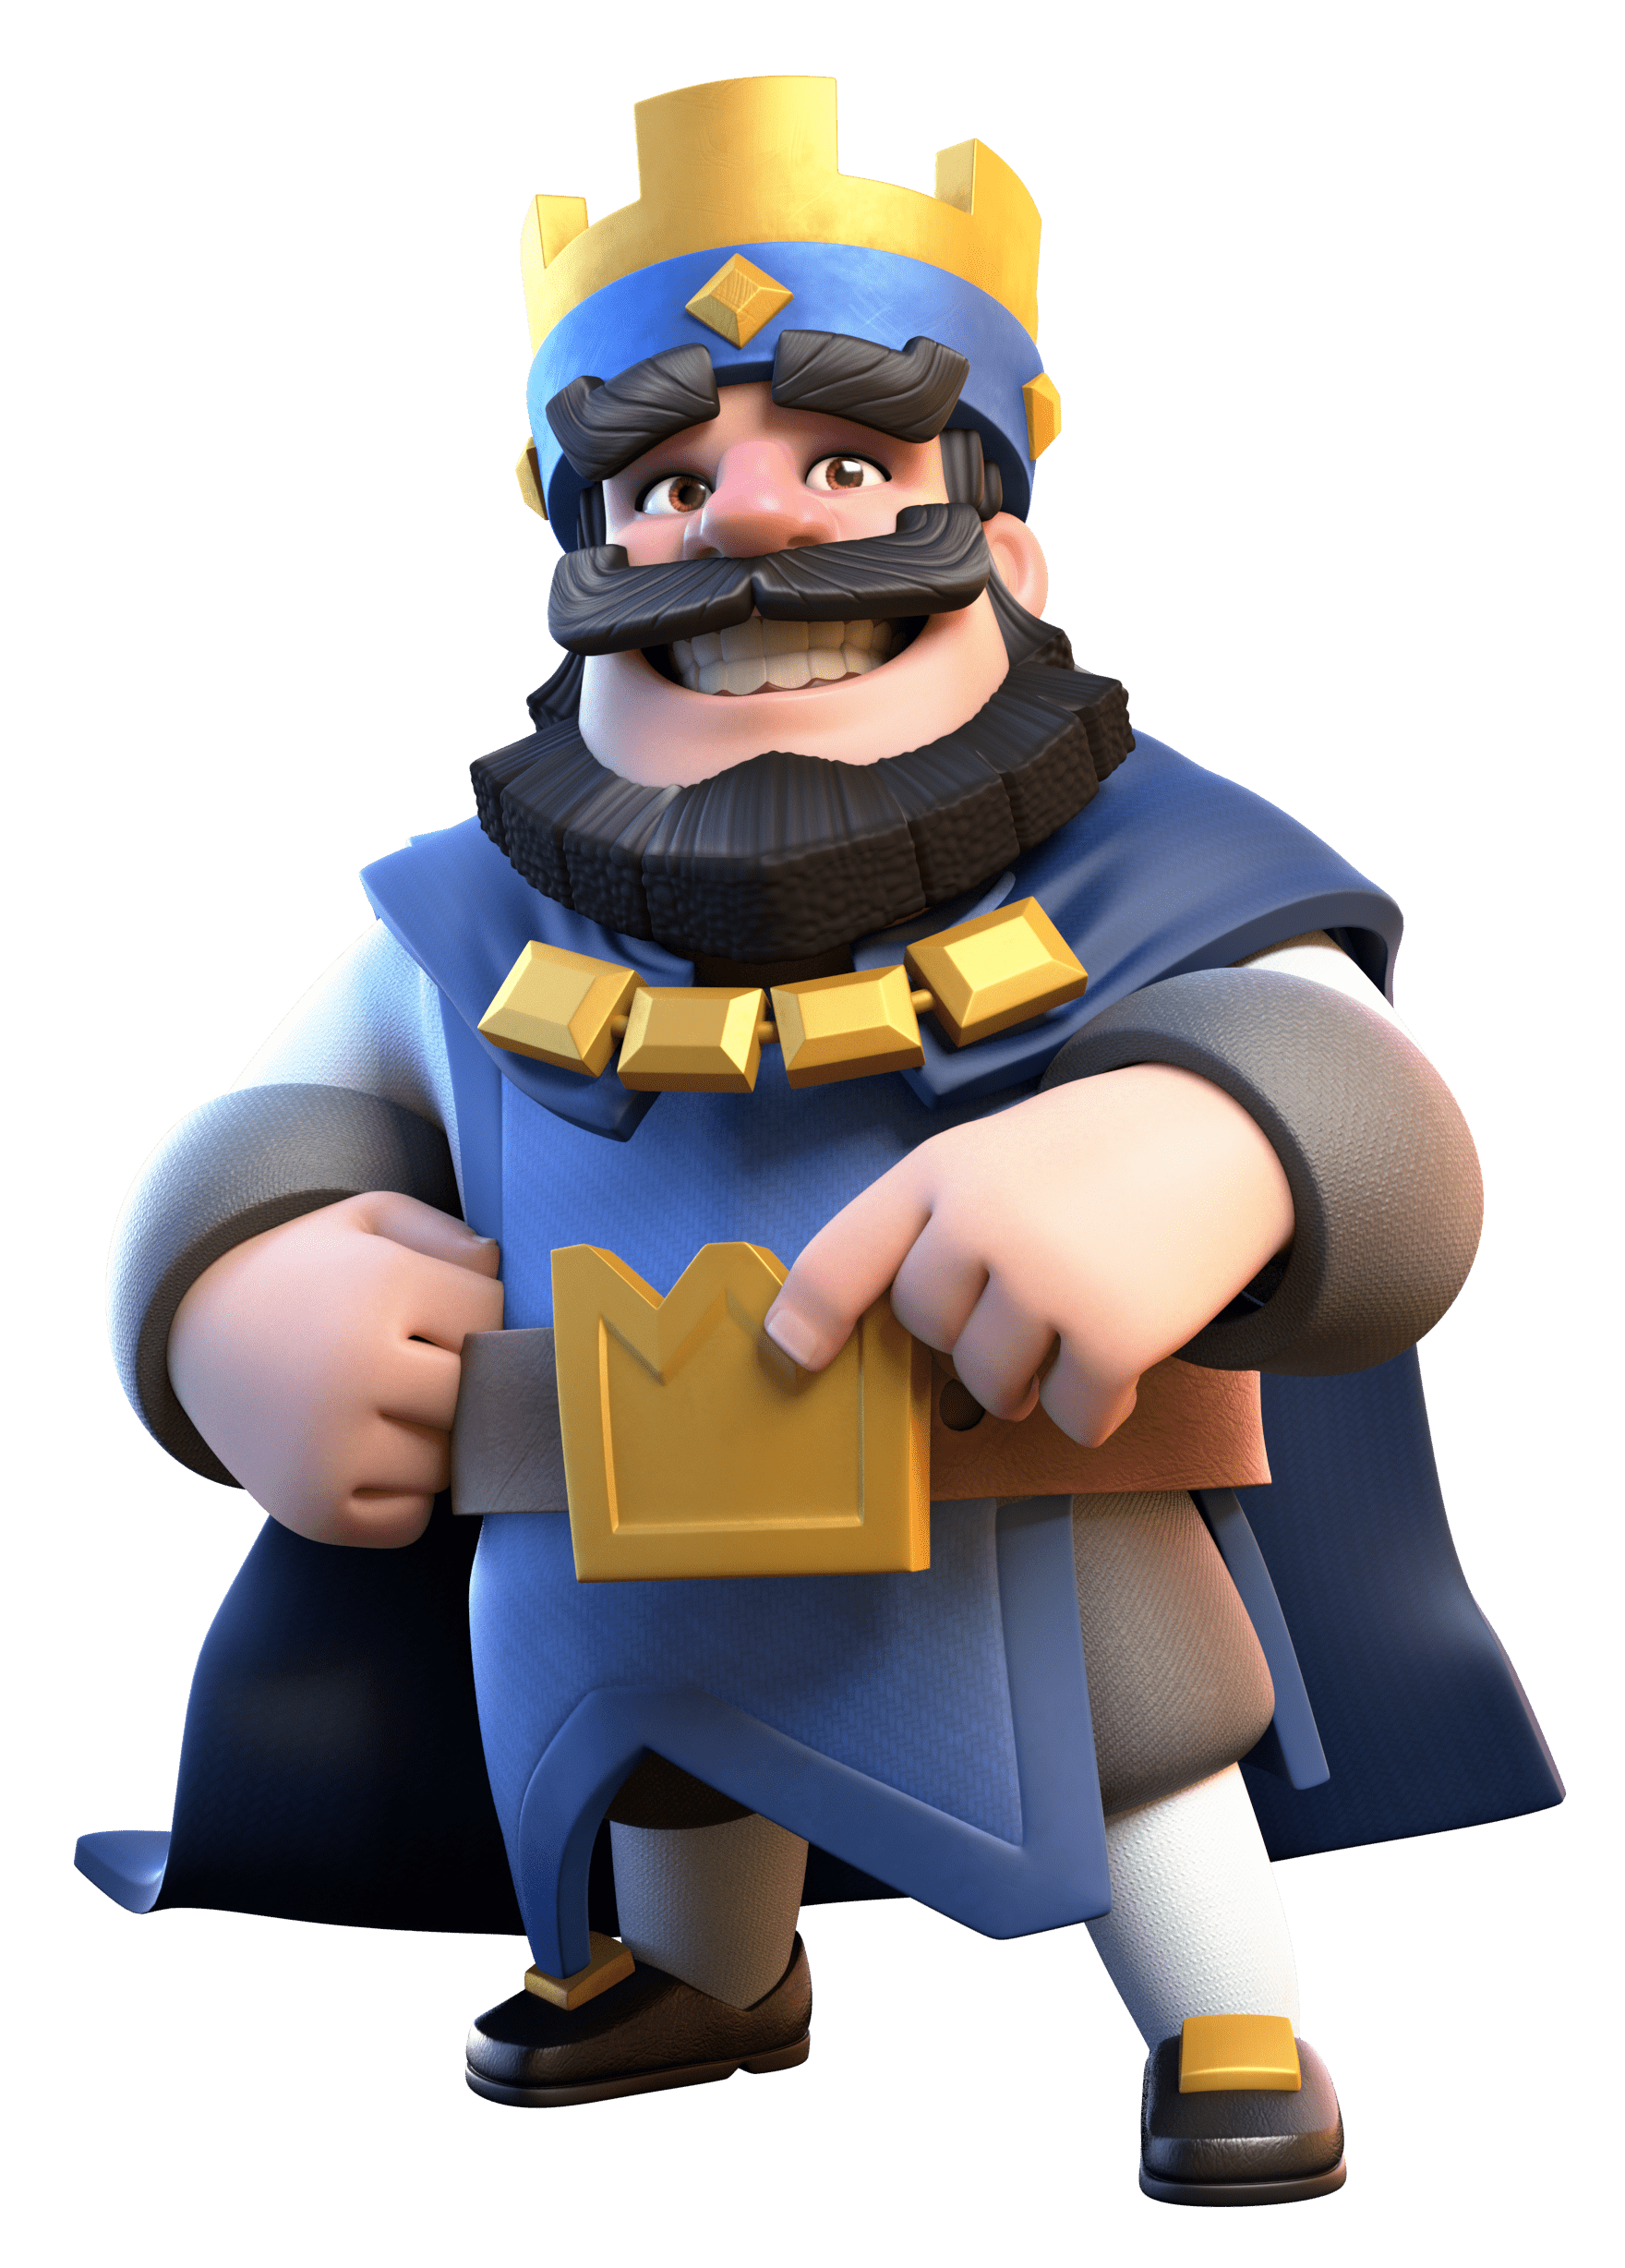 png royalty free stock Clash royale blue png. King transparent